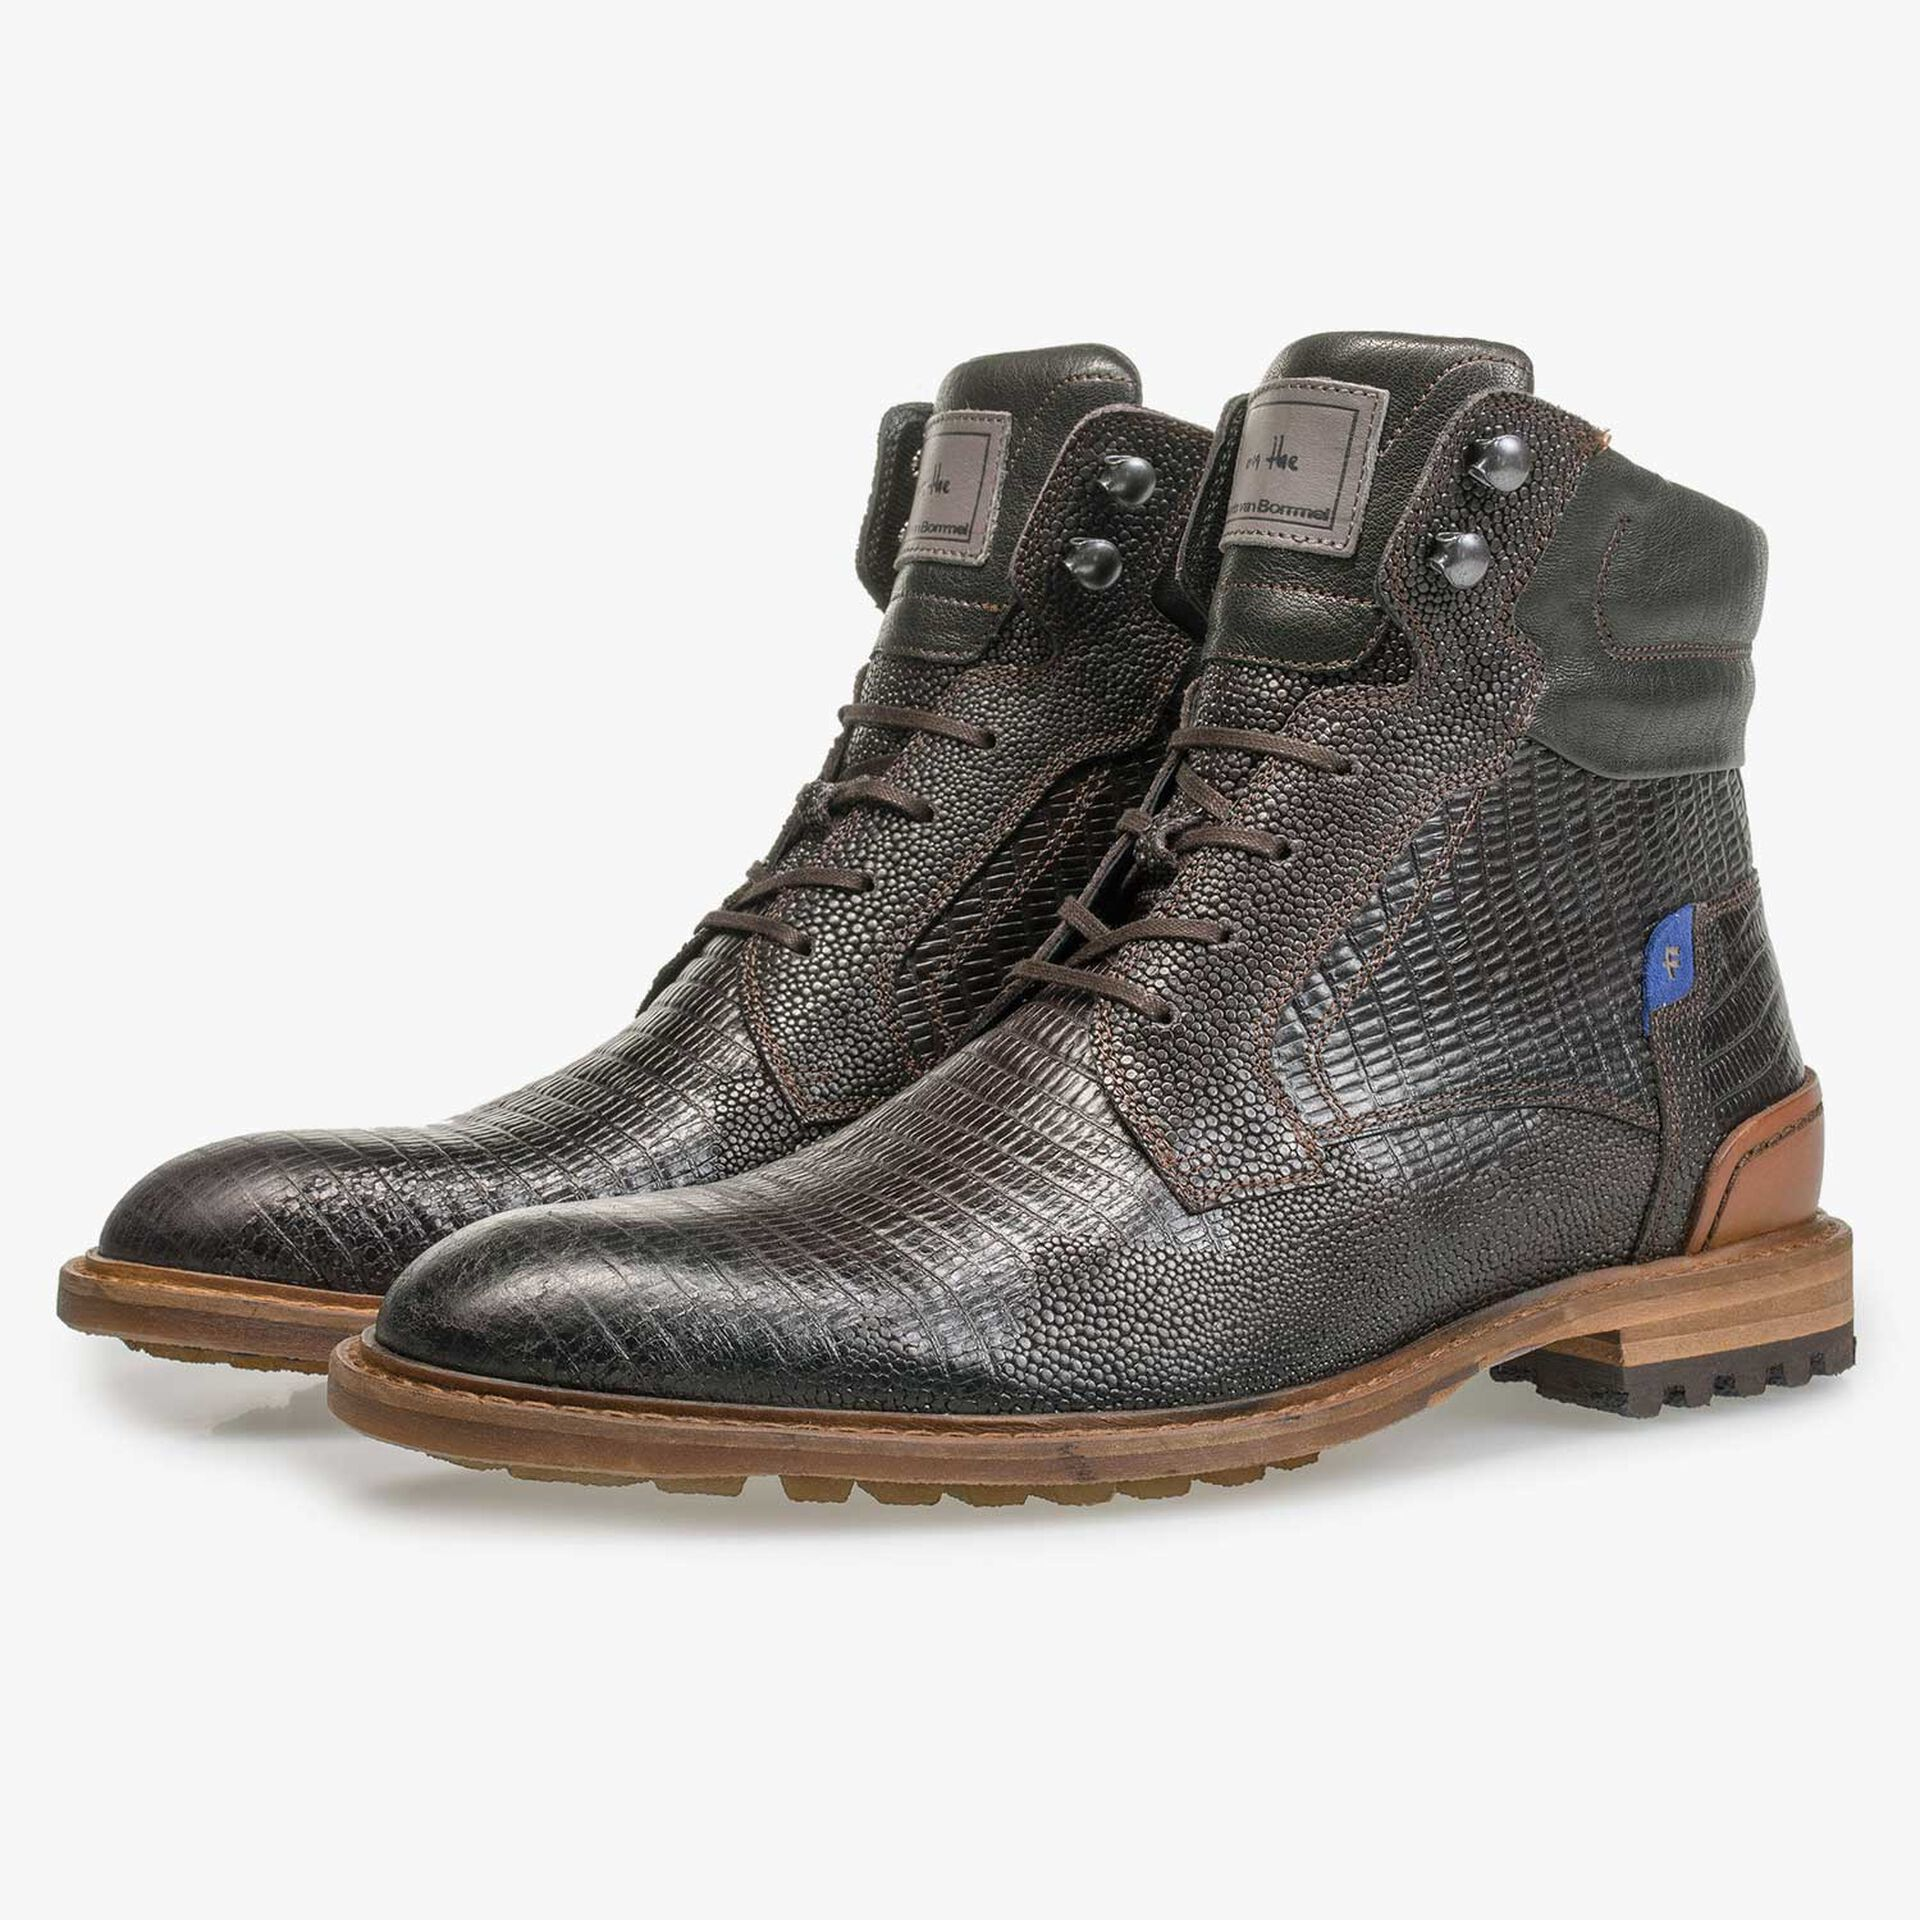 Dark brown leather lace boot with lizard print